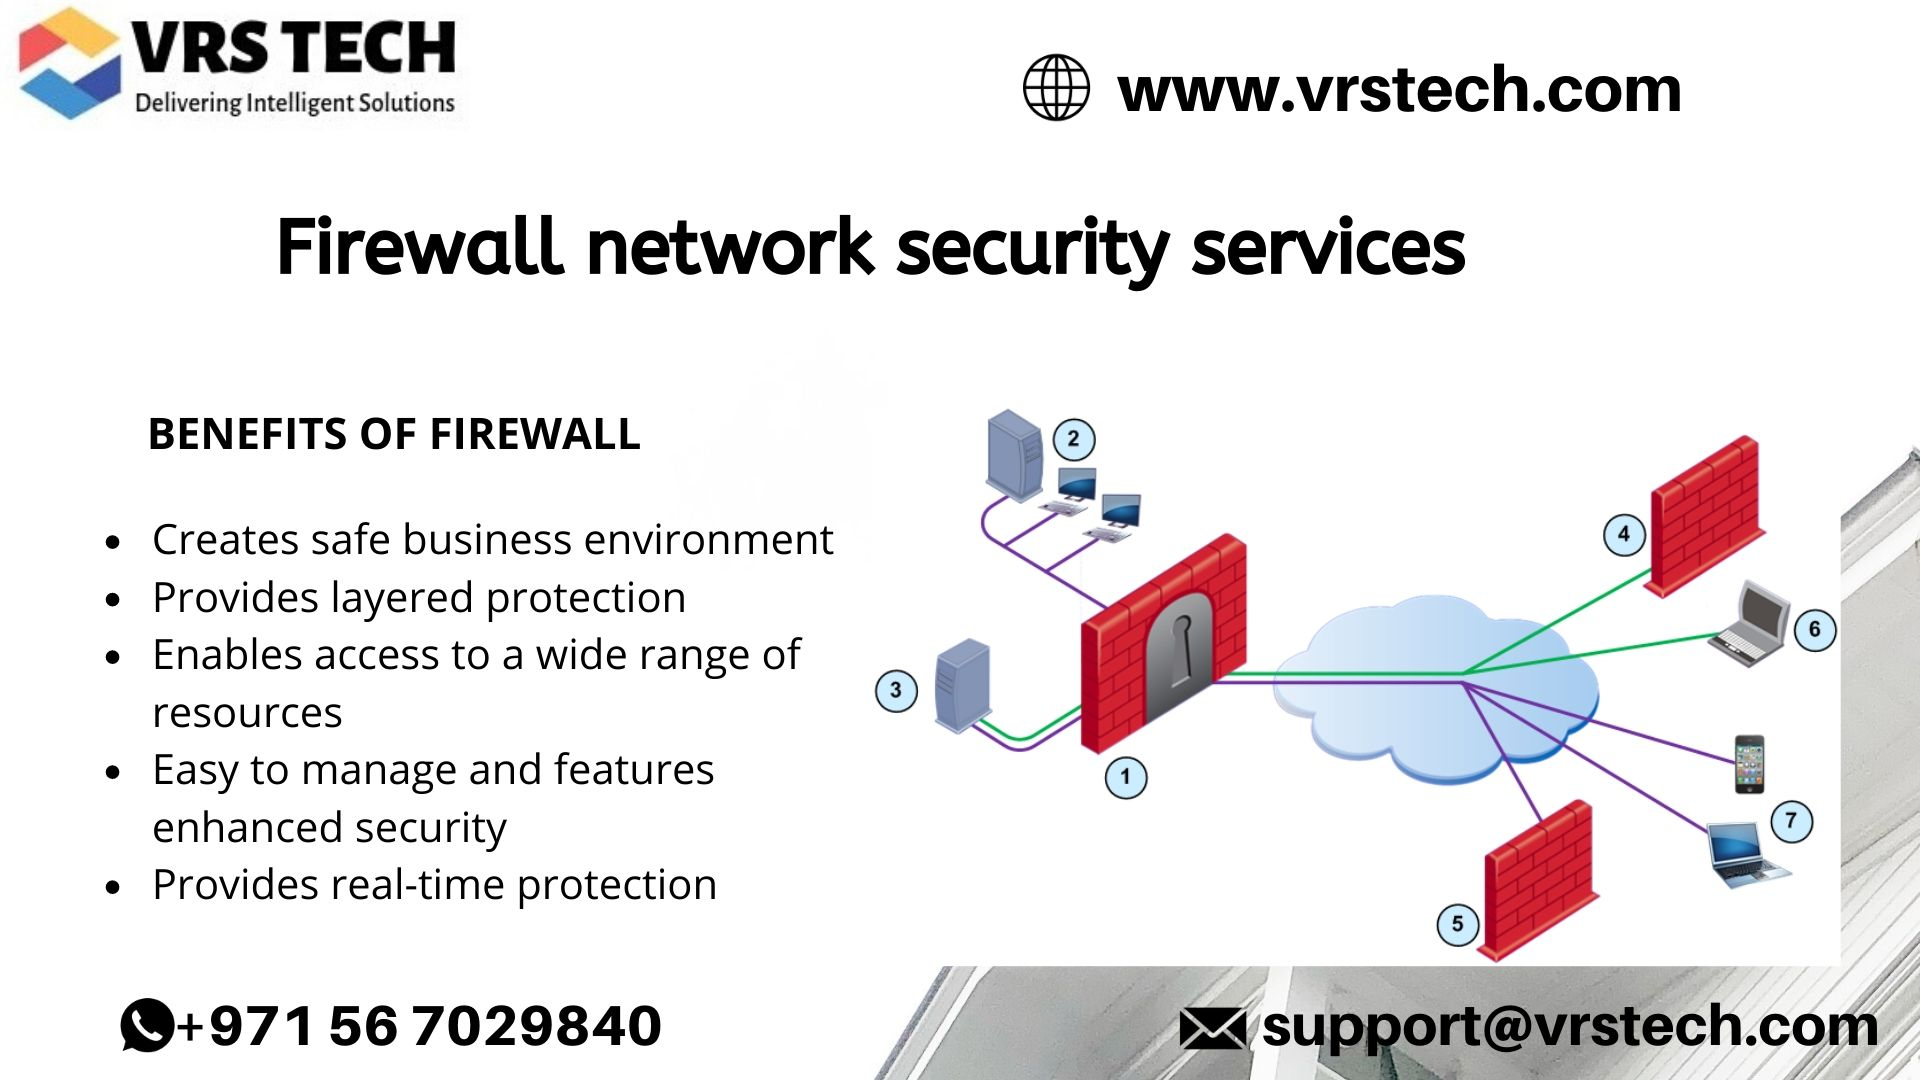 Firewall network security services.jpg